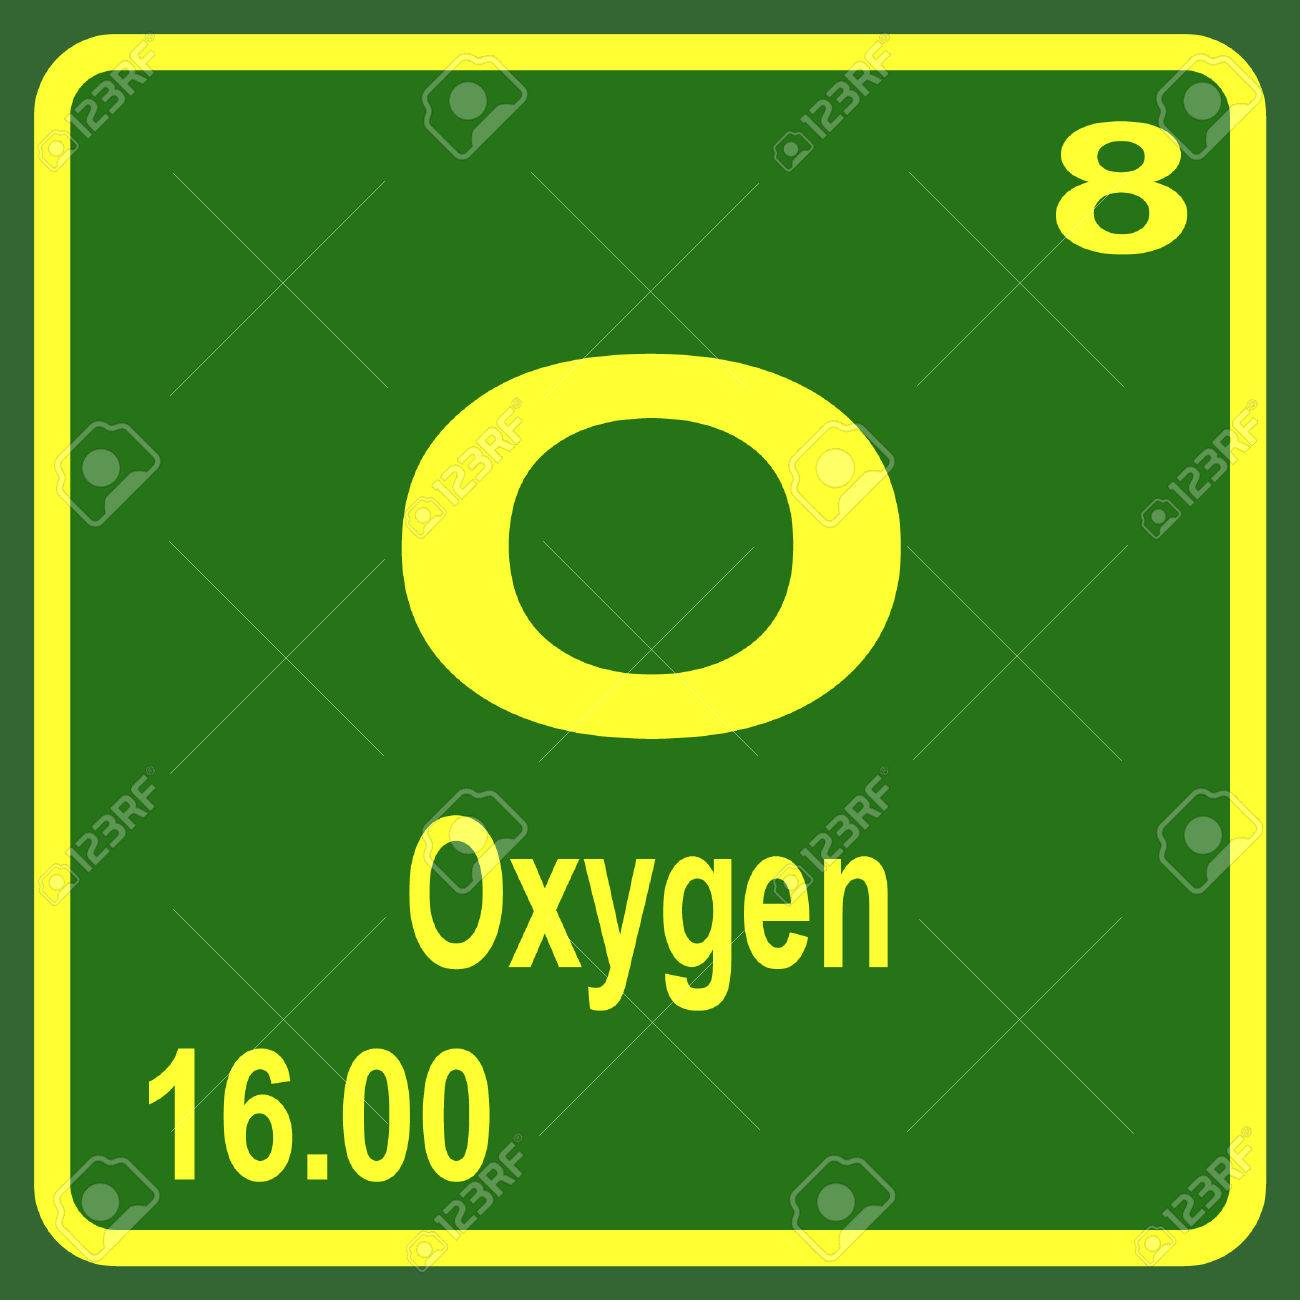 Oxygen symbol periodic table choice image periodic table images oxygen symbol periodic table choice image periodic table images o oxygen stock photos royalty free o gamestrikefo Gallery